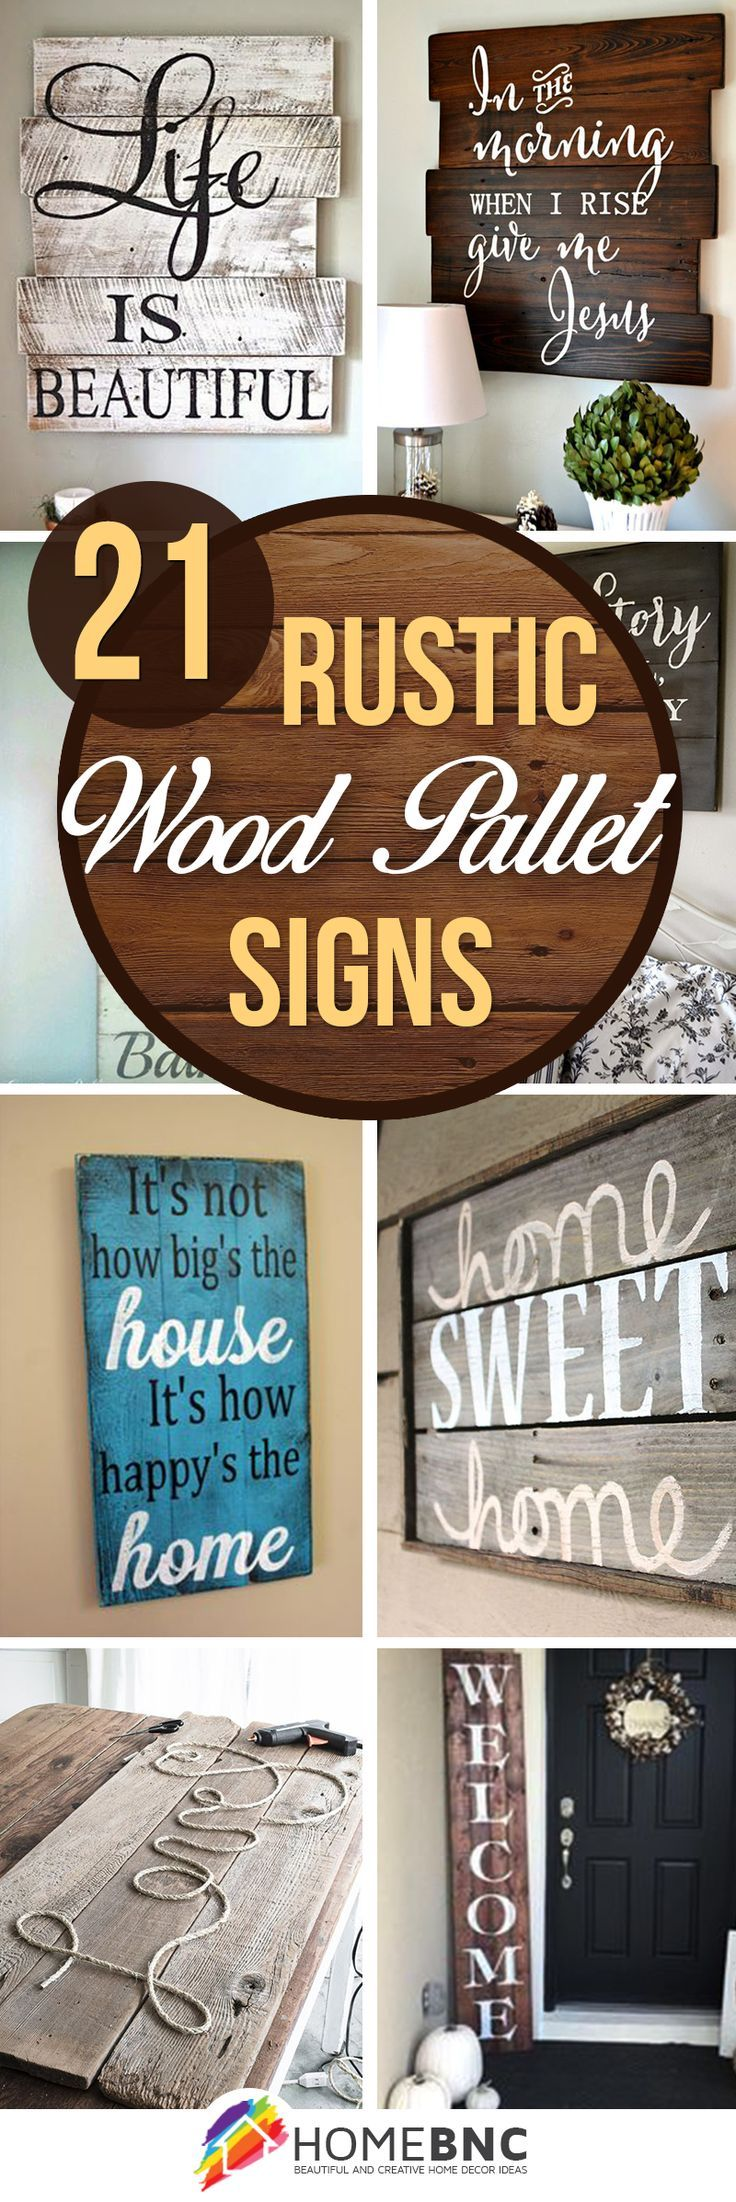 Wooden Sign Decor 21 Wood Signs To Add Rustic Glam To Your Decor  Wood Signs